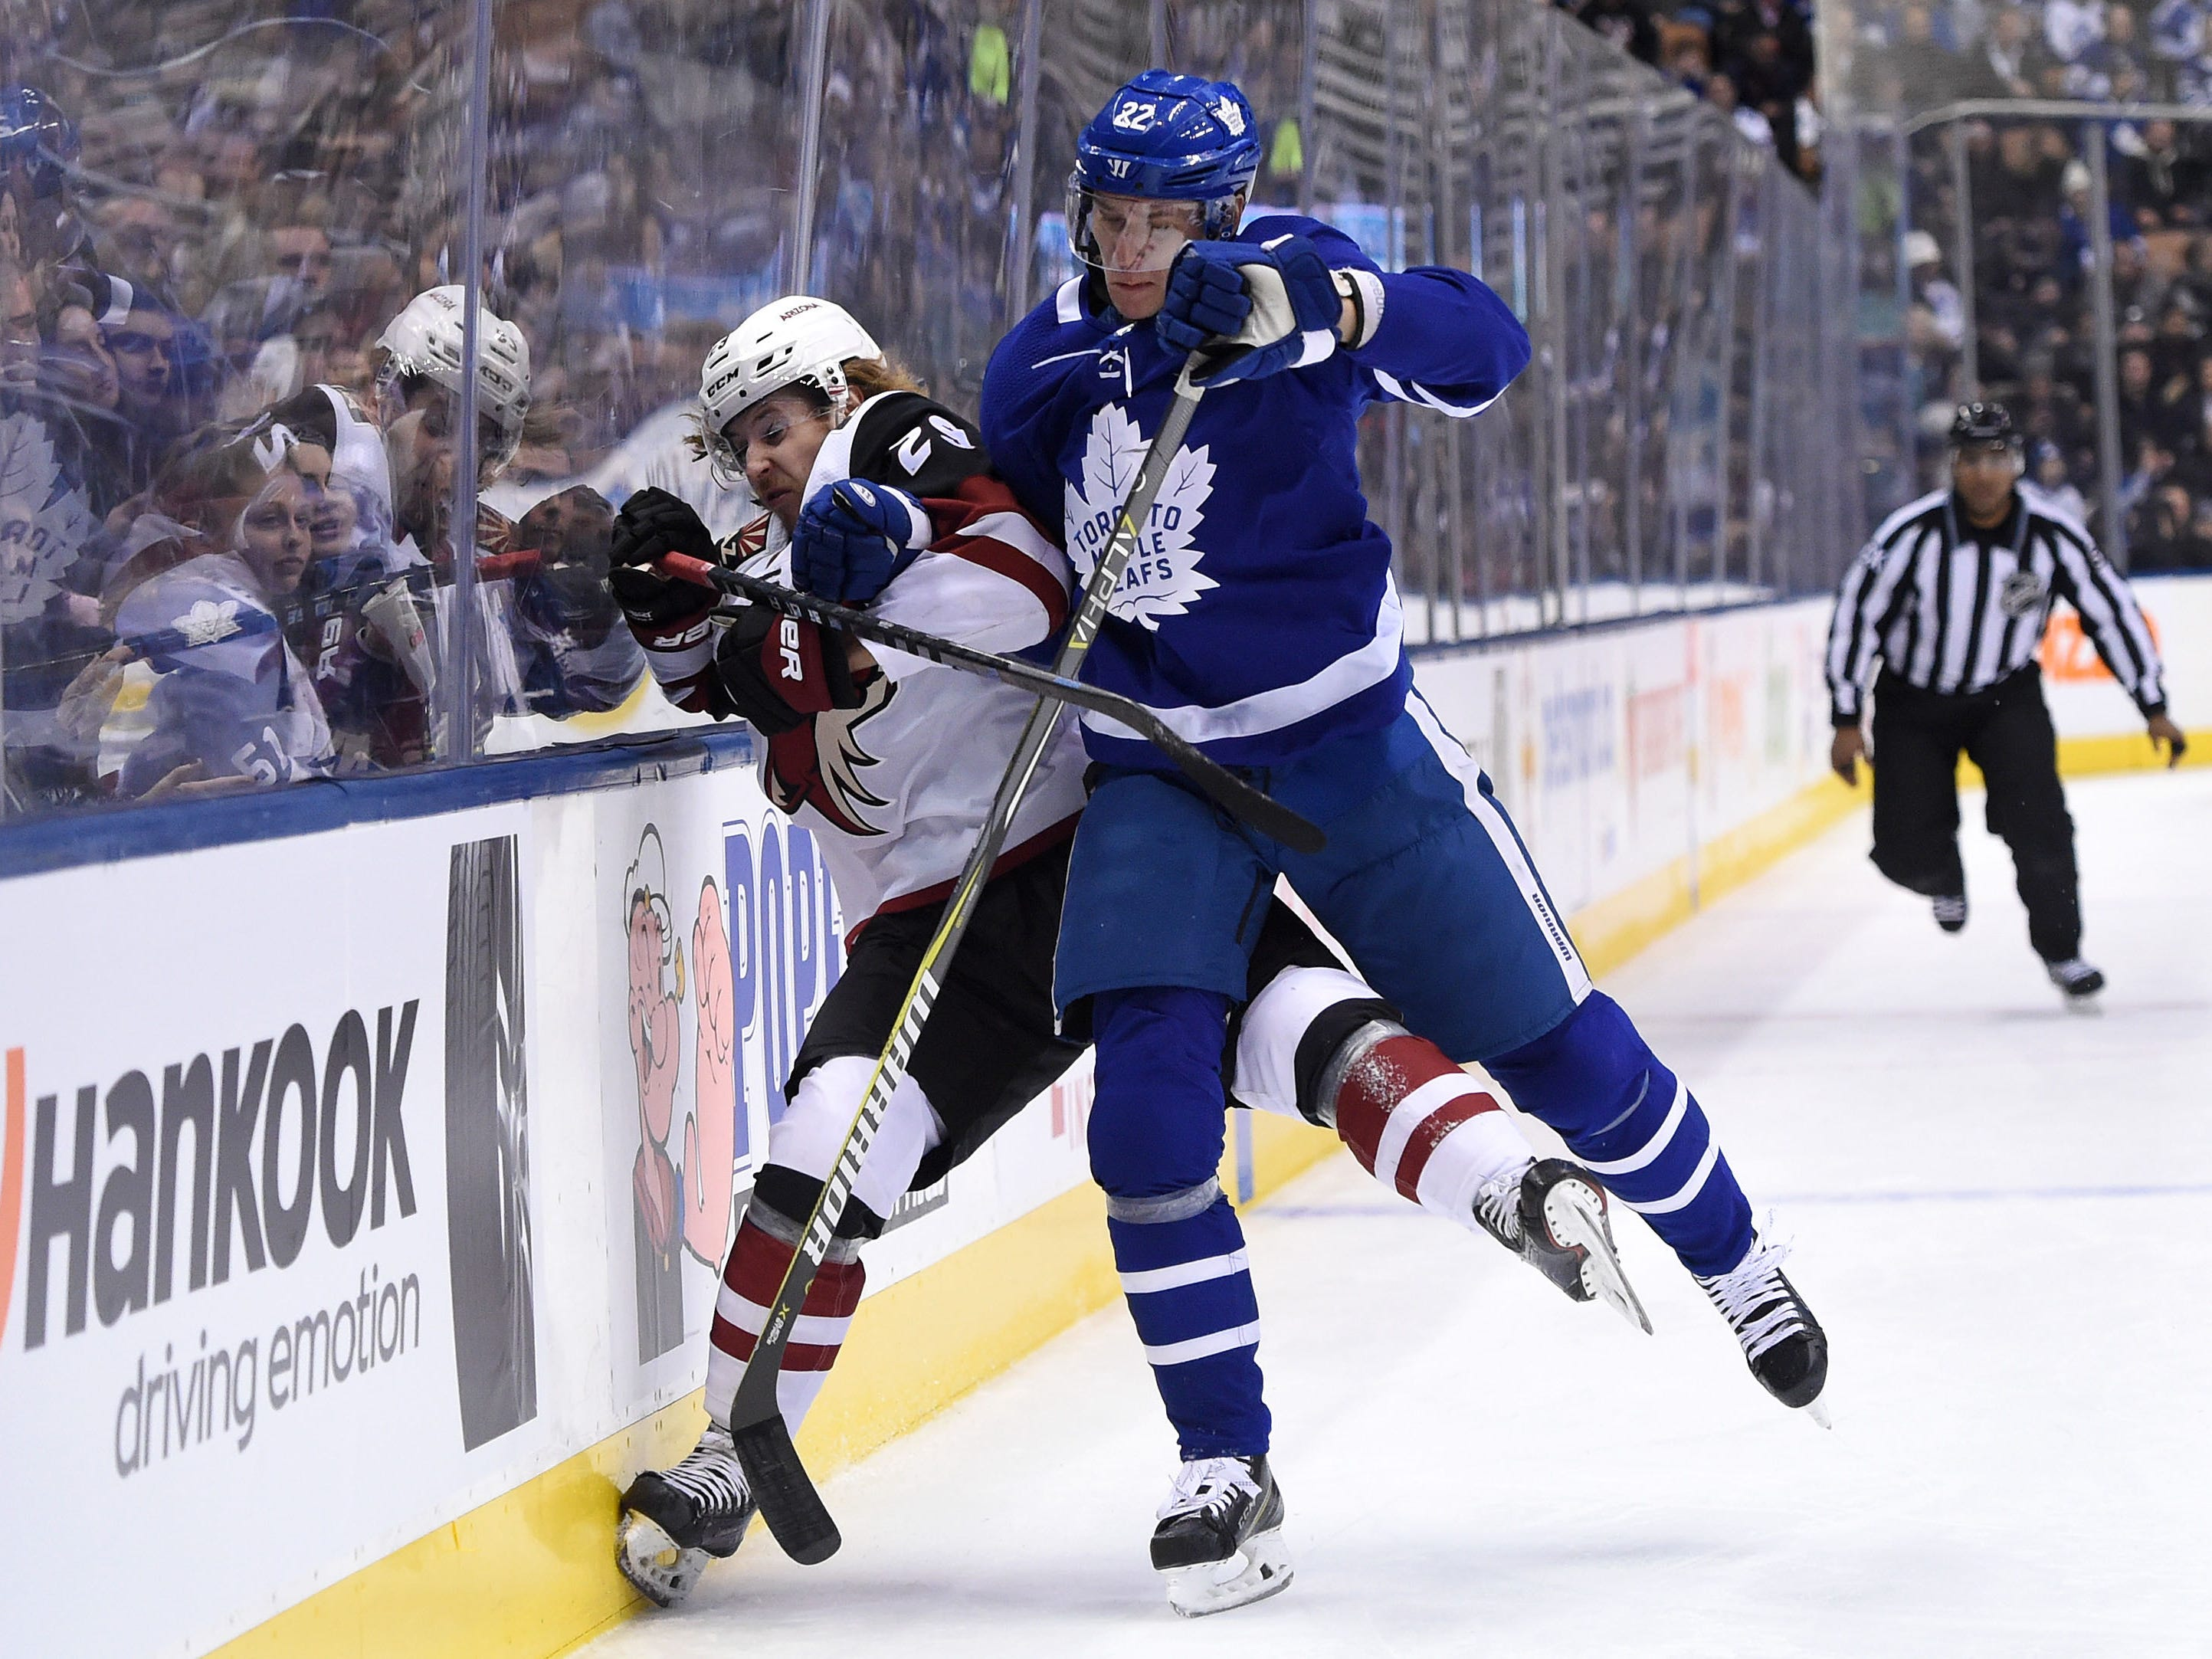 Jan 20, 2019: Toronto Maple Leafs defenceman Nikita Zaitsev (22) bodychecks Arizona Coyotes forward Mario Kempe (29) in the first period at Scotiabank Arena.